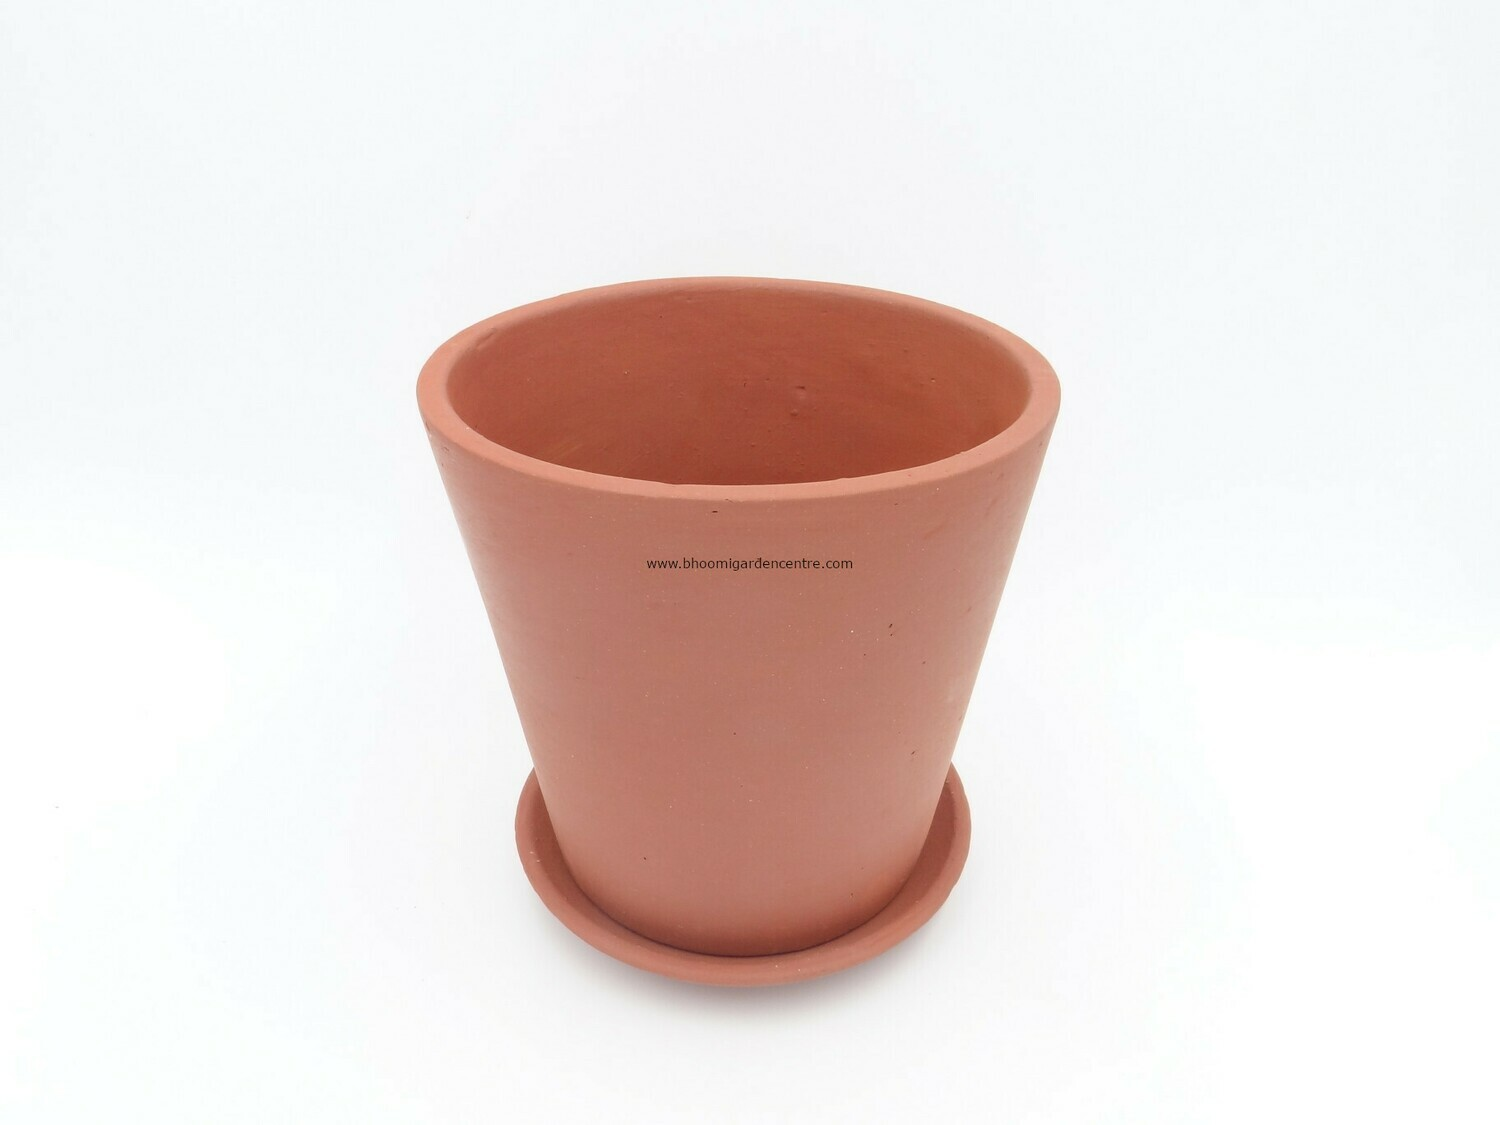 Terracotta regular with plate (6 inch)